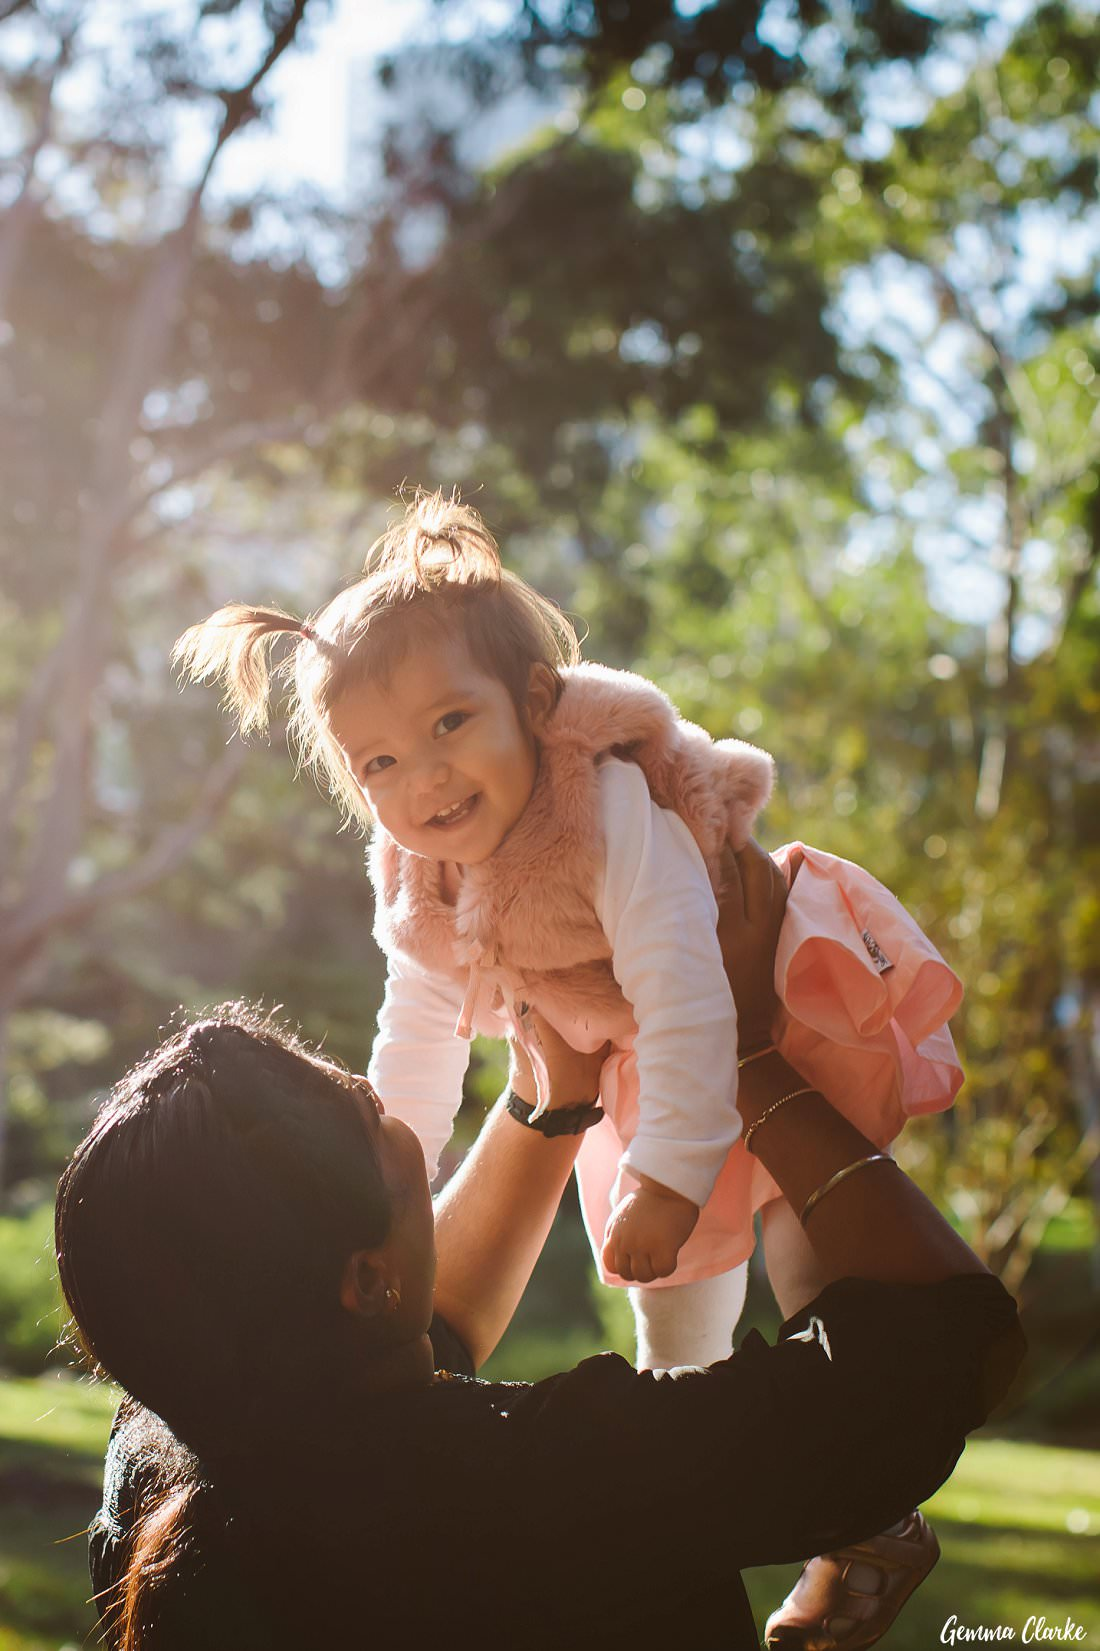 Big smiles for this cutie while she is thrown in the air at this Parramatta Park family portraits session!